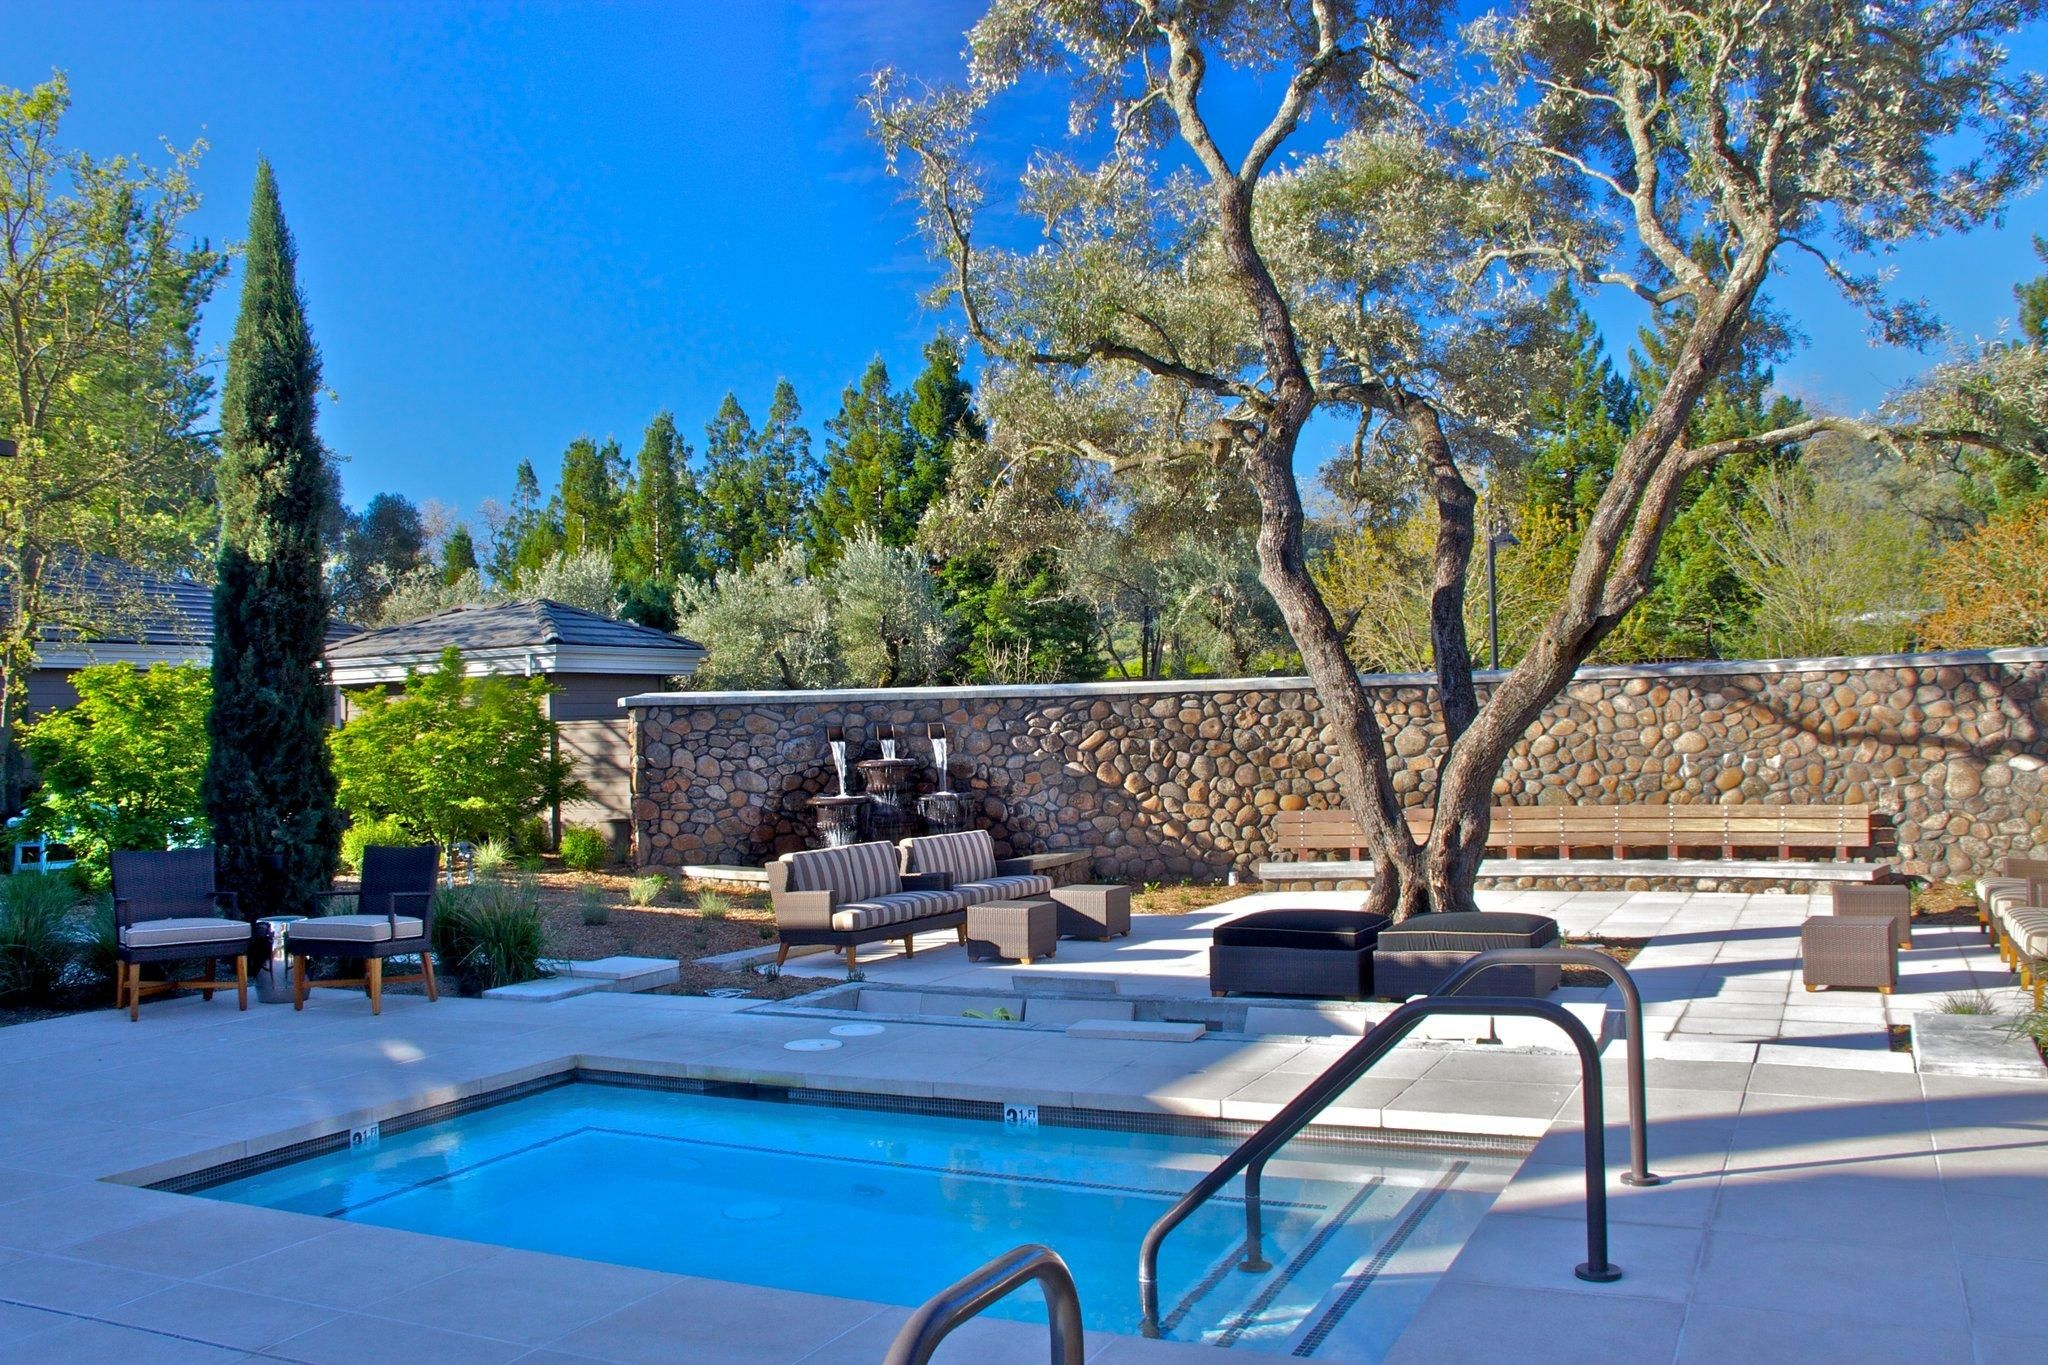 Hotel Yountville Updated 2017 Reviews Price Comparison Napa Valley Ca